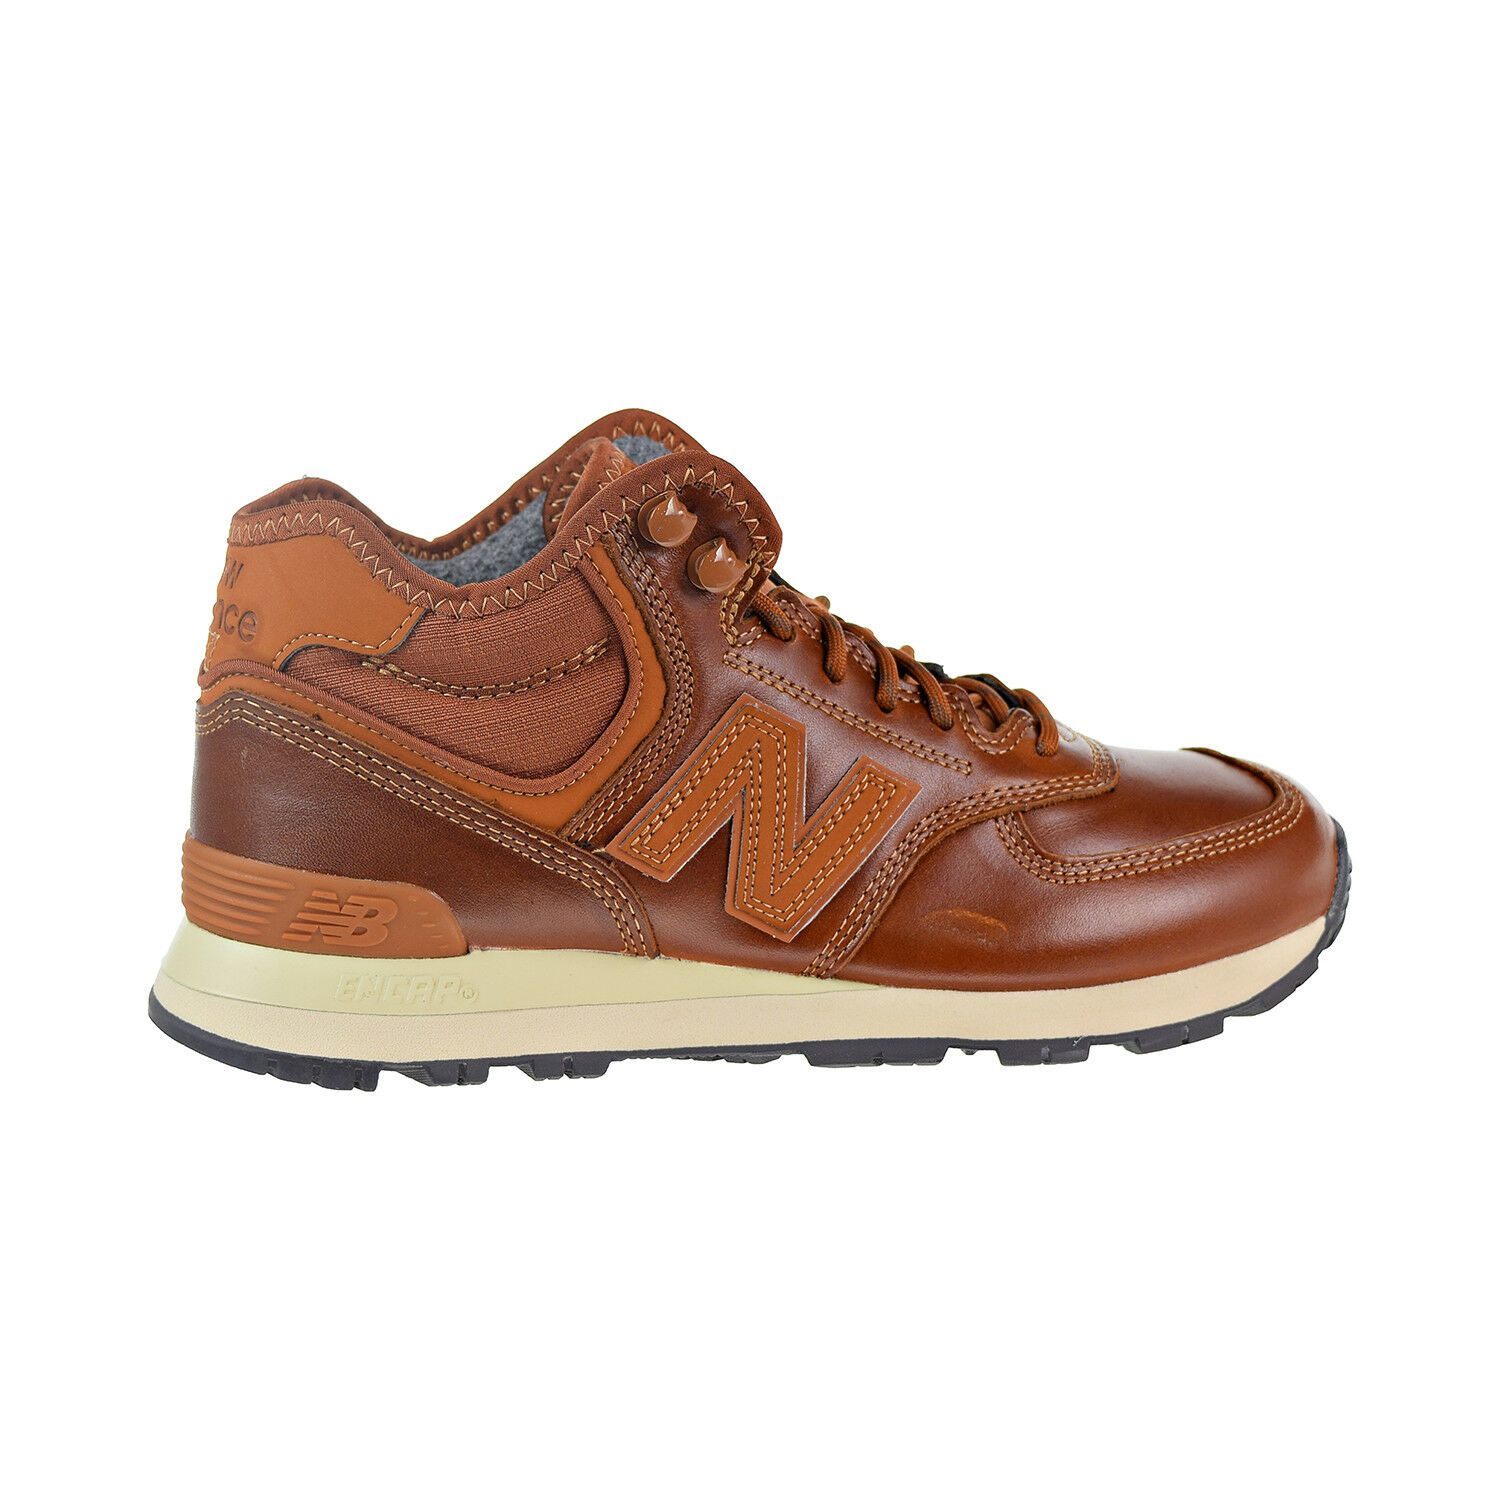 New Balance 574 Men's shoes Brown MH574-OAD